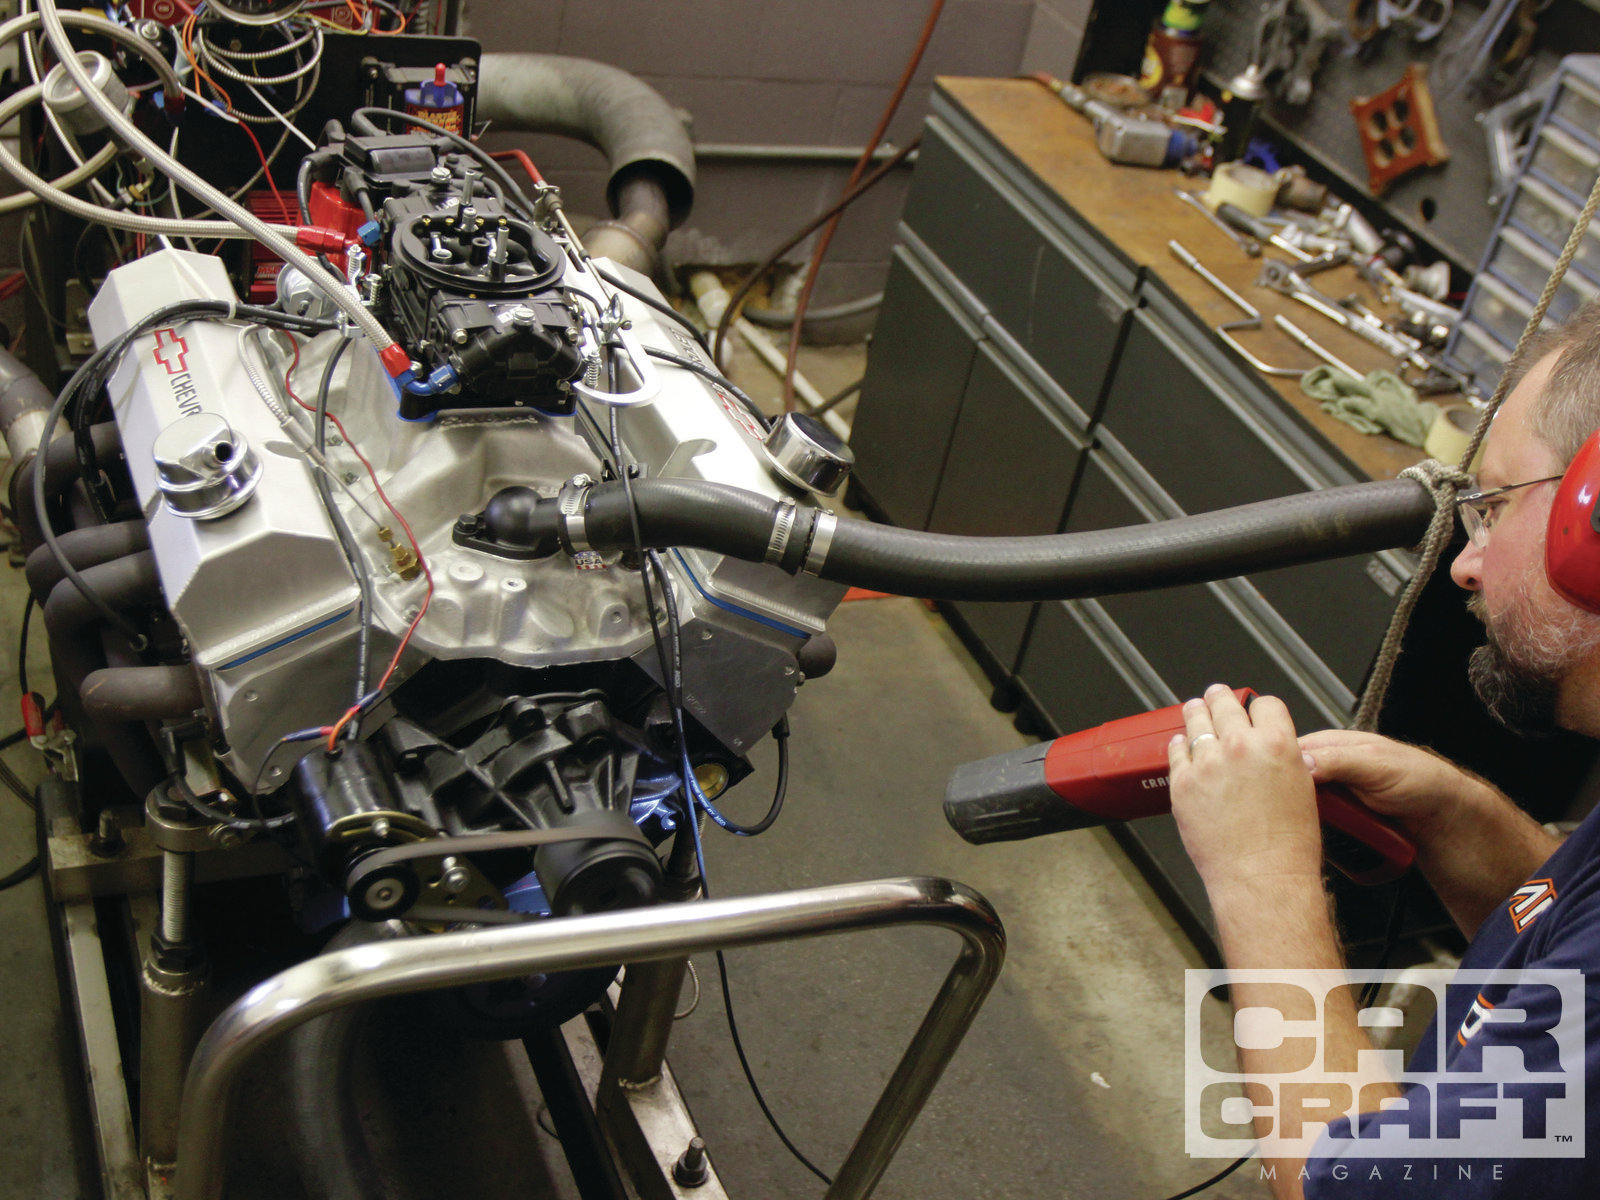 15. Now with more cubic inches, we put the Reborn 383 back on the dyno, testing it with a Quick Fuel 750 carburetor, a 1-inch open spacer, MSD's Ready-to-Run HEI distributor, and 15⁄8-inch headers. The engine ran best with 34 degrees of total timing.